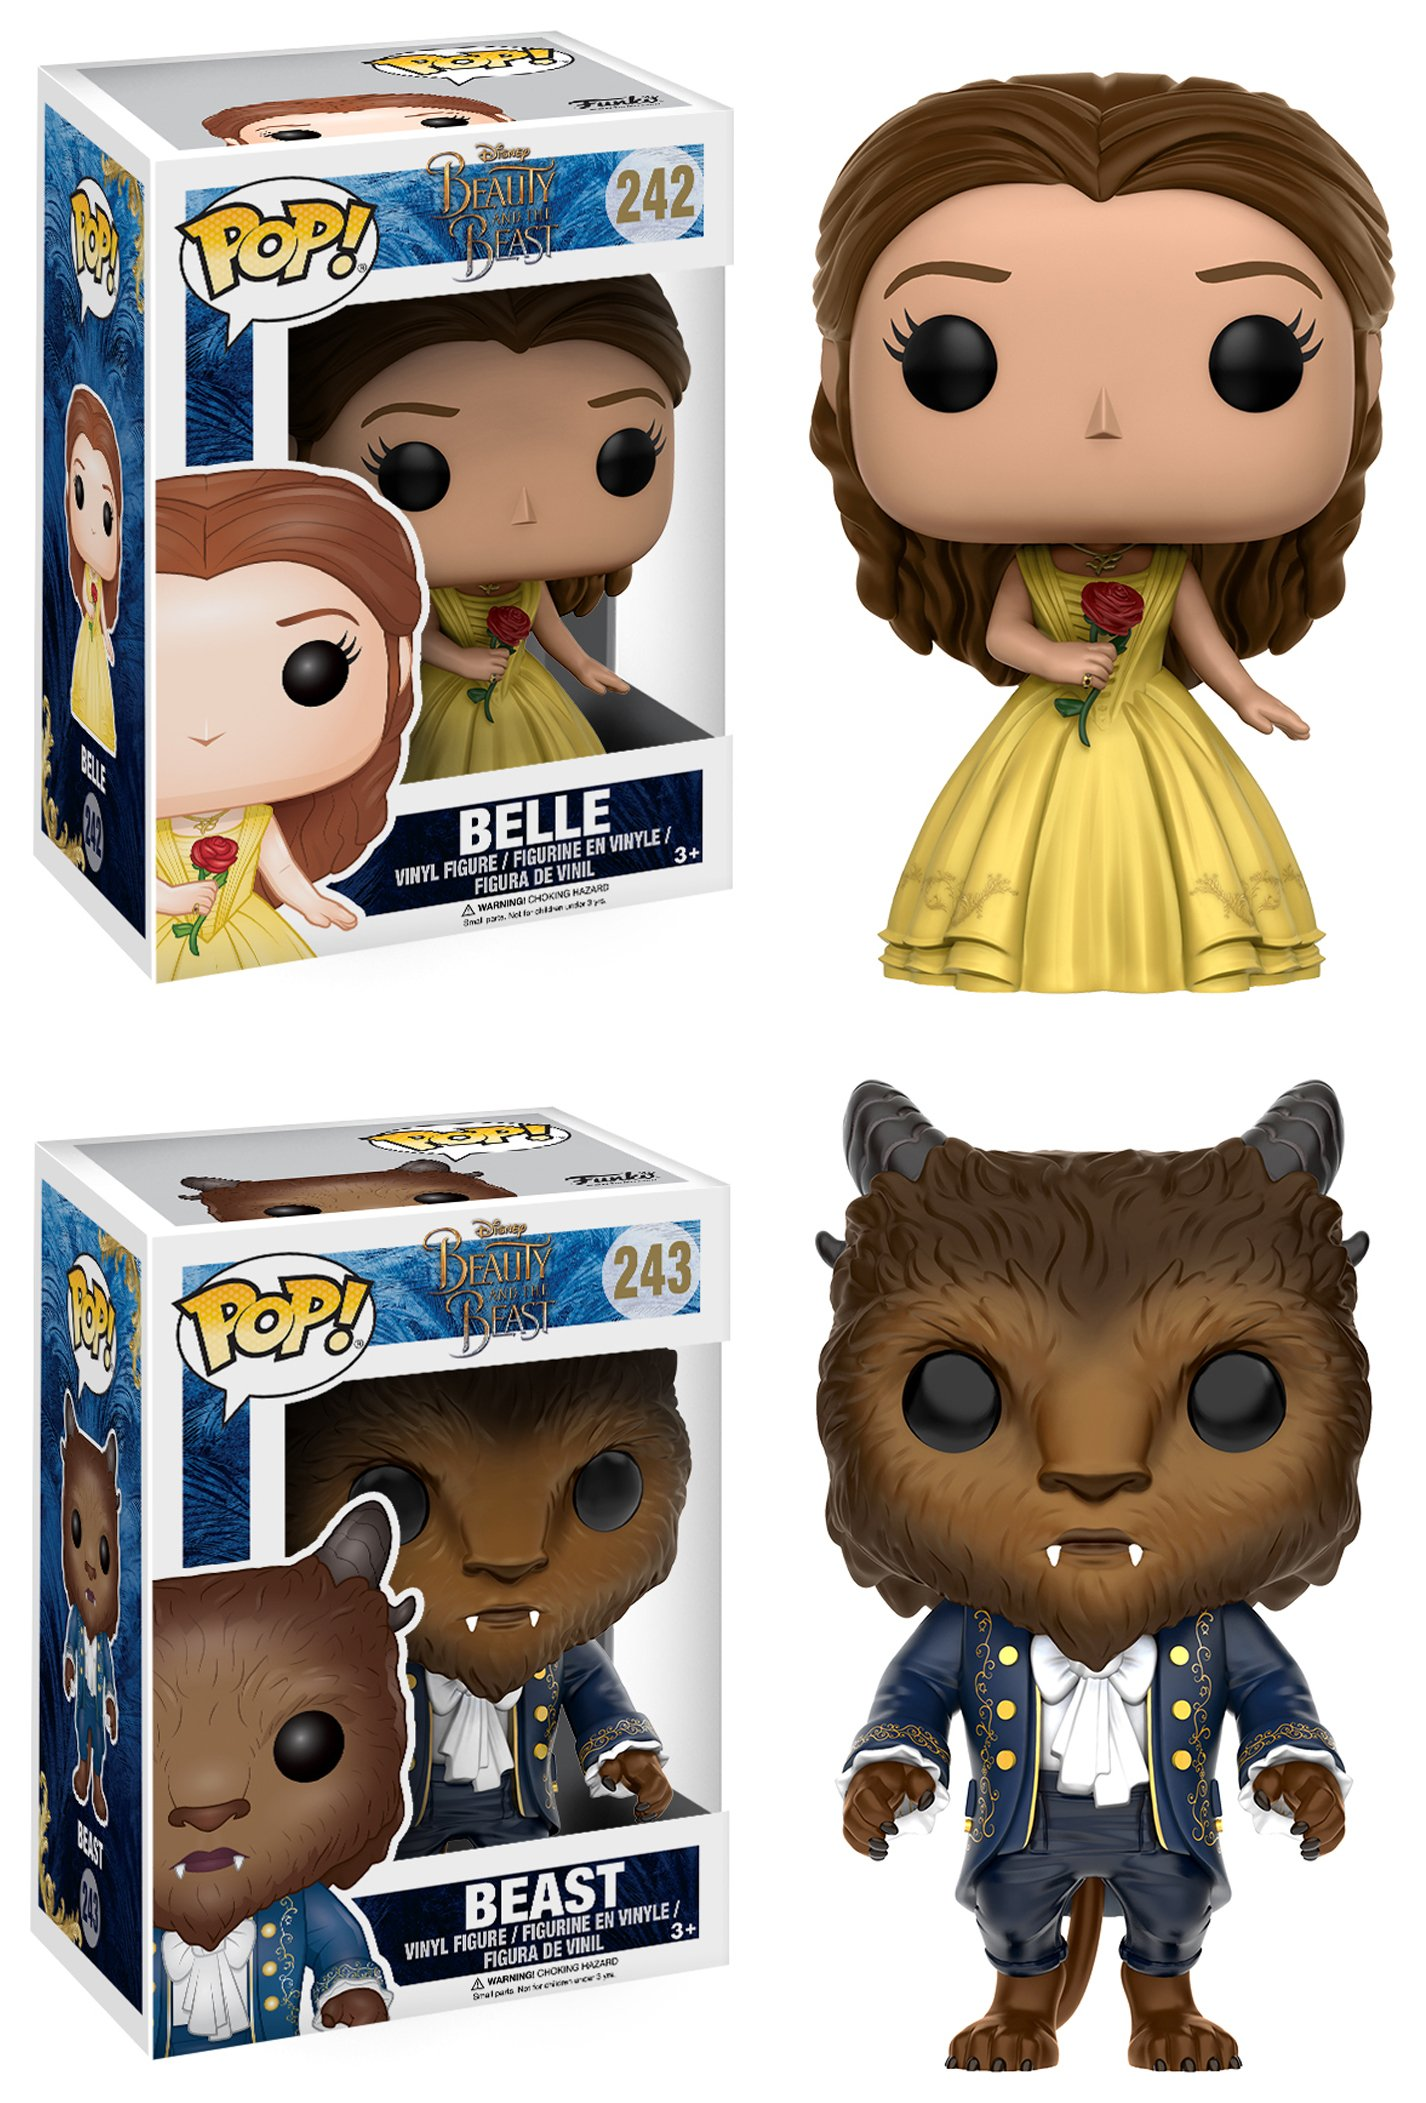 Pop! Vinyl Beauty and the Beast Head Gift Set.